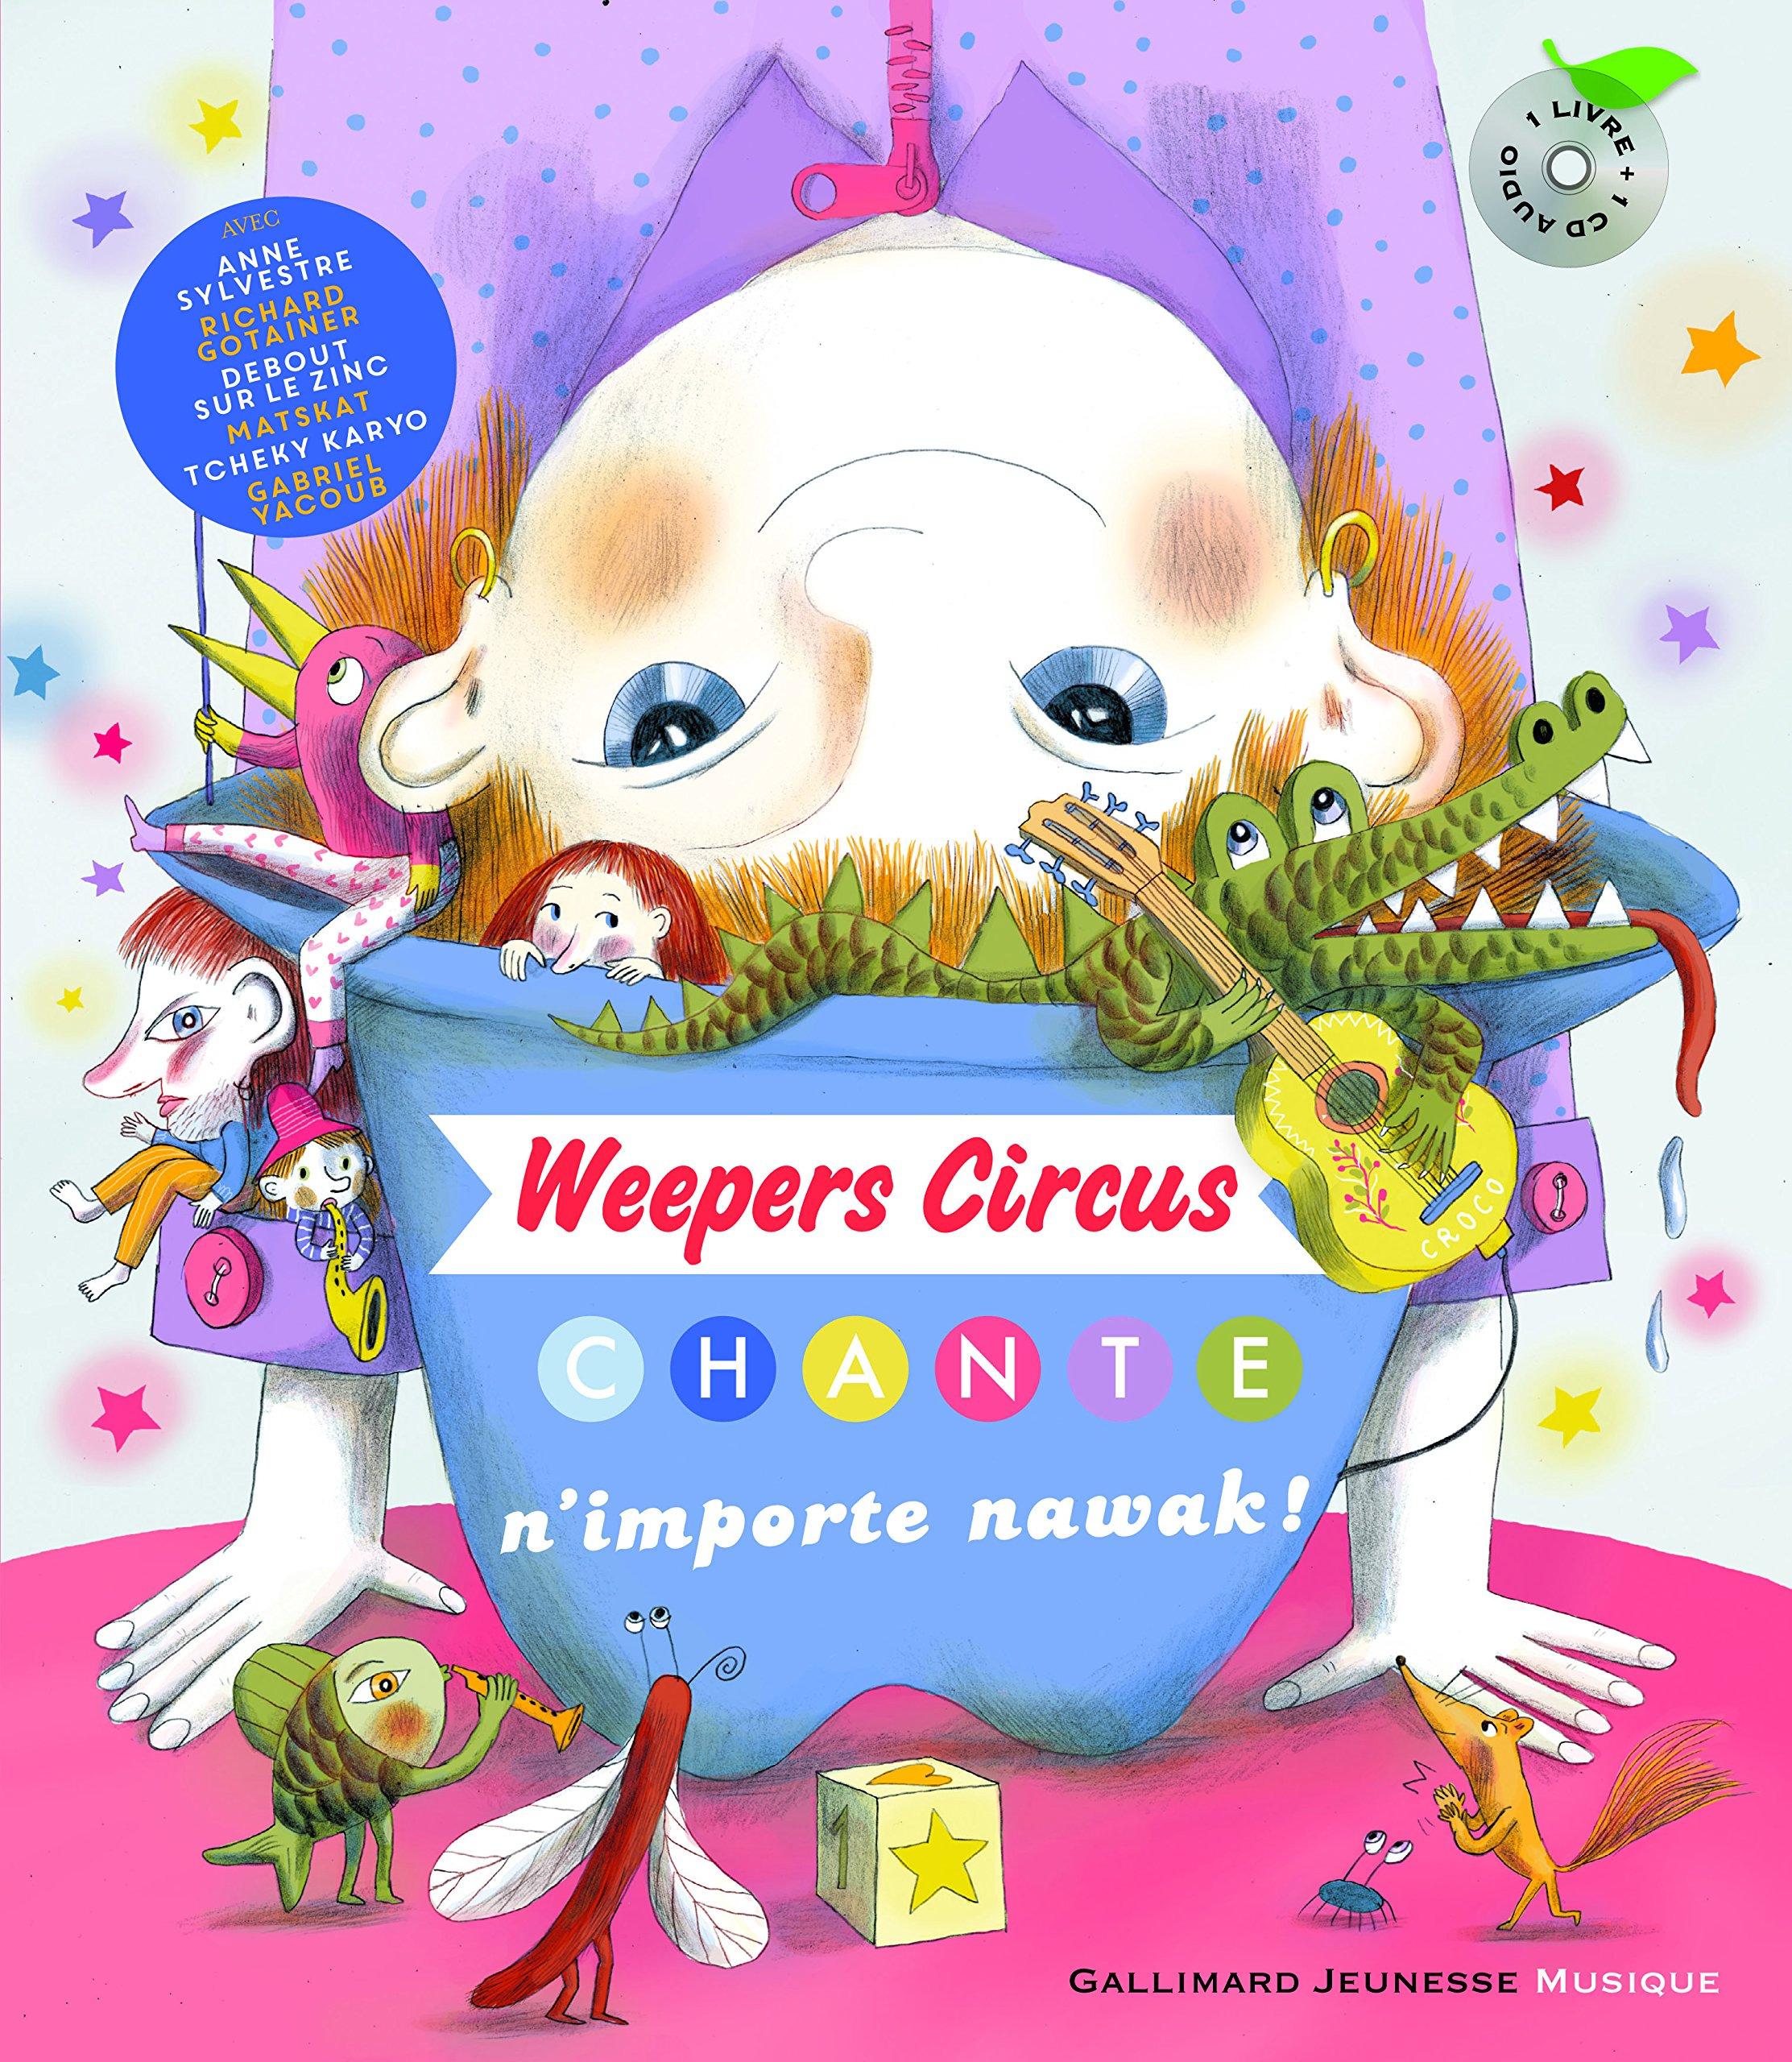 Weepers Circus chante n'importe nawak!